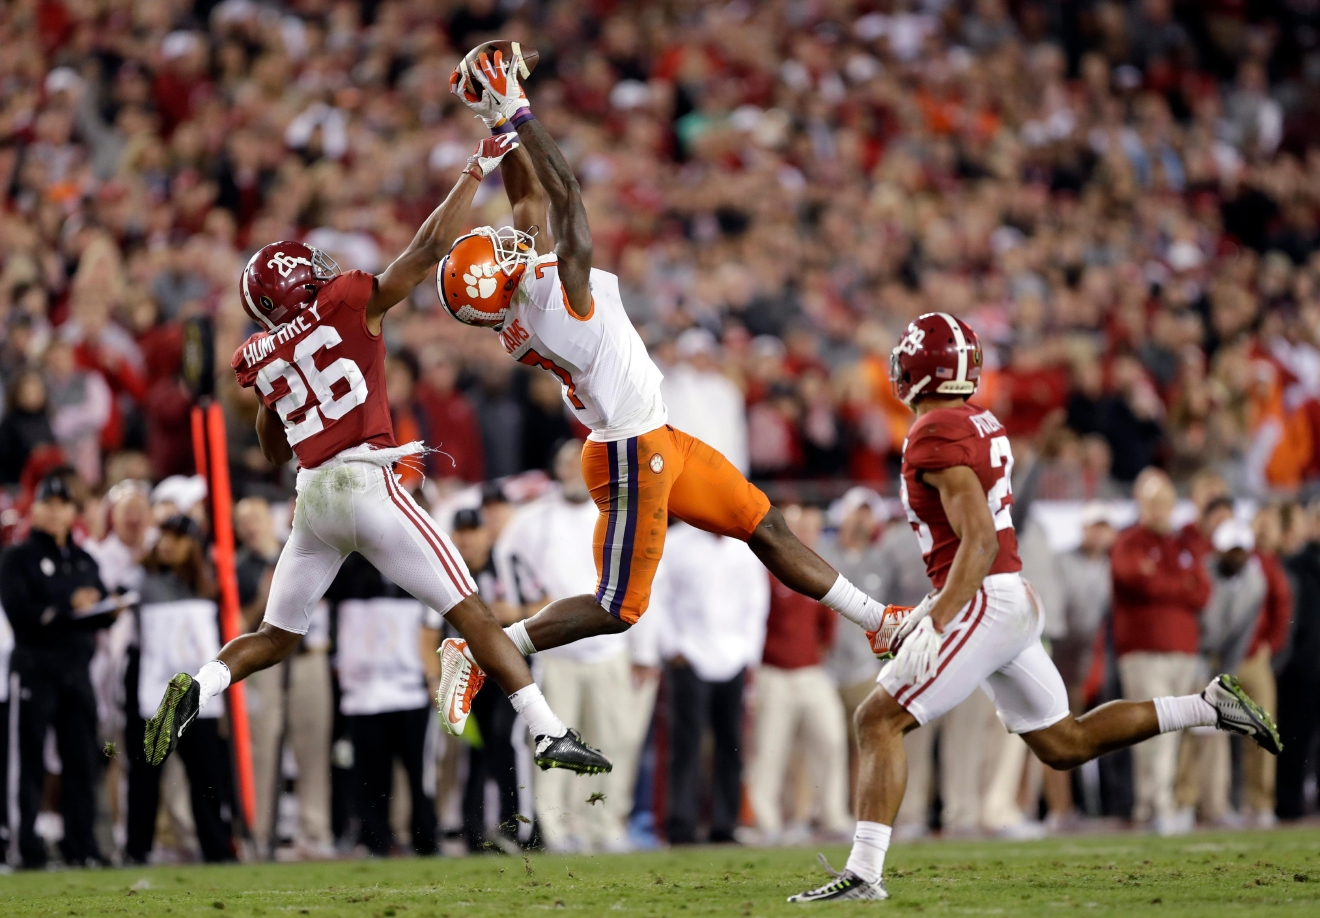 Clemson's Mike Williams catches a pass in front of Alabama's Marlon Humphrey during the second half of the NCAA college football playoff championship game Tuesday, Jan. 10, 2017, in Tampa, Fla. (AP Photo/Chris O'Meara)